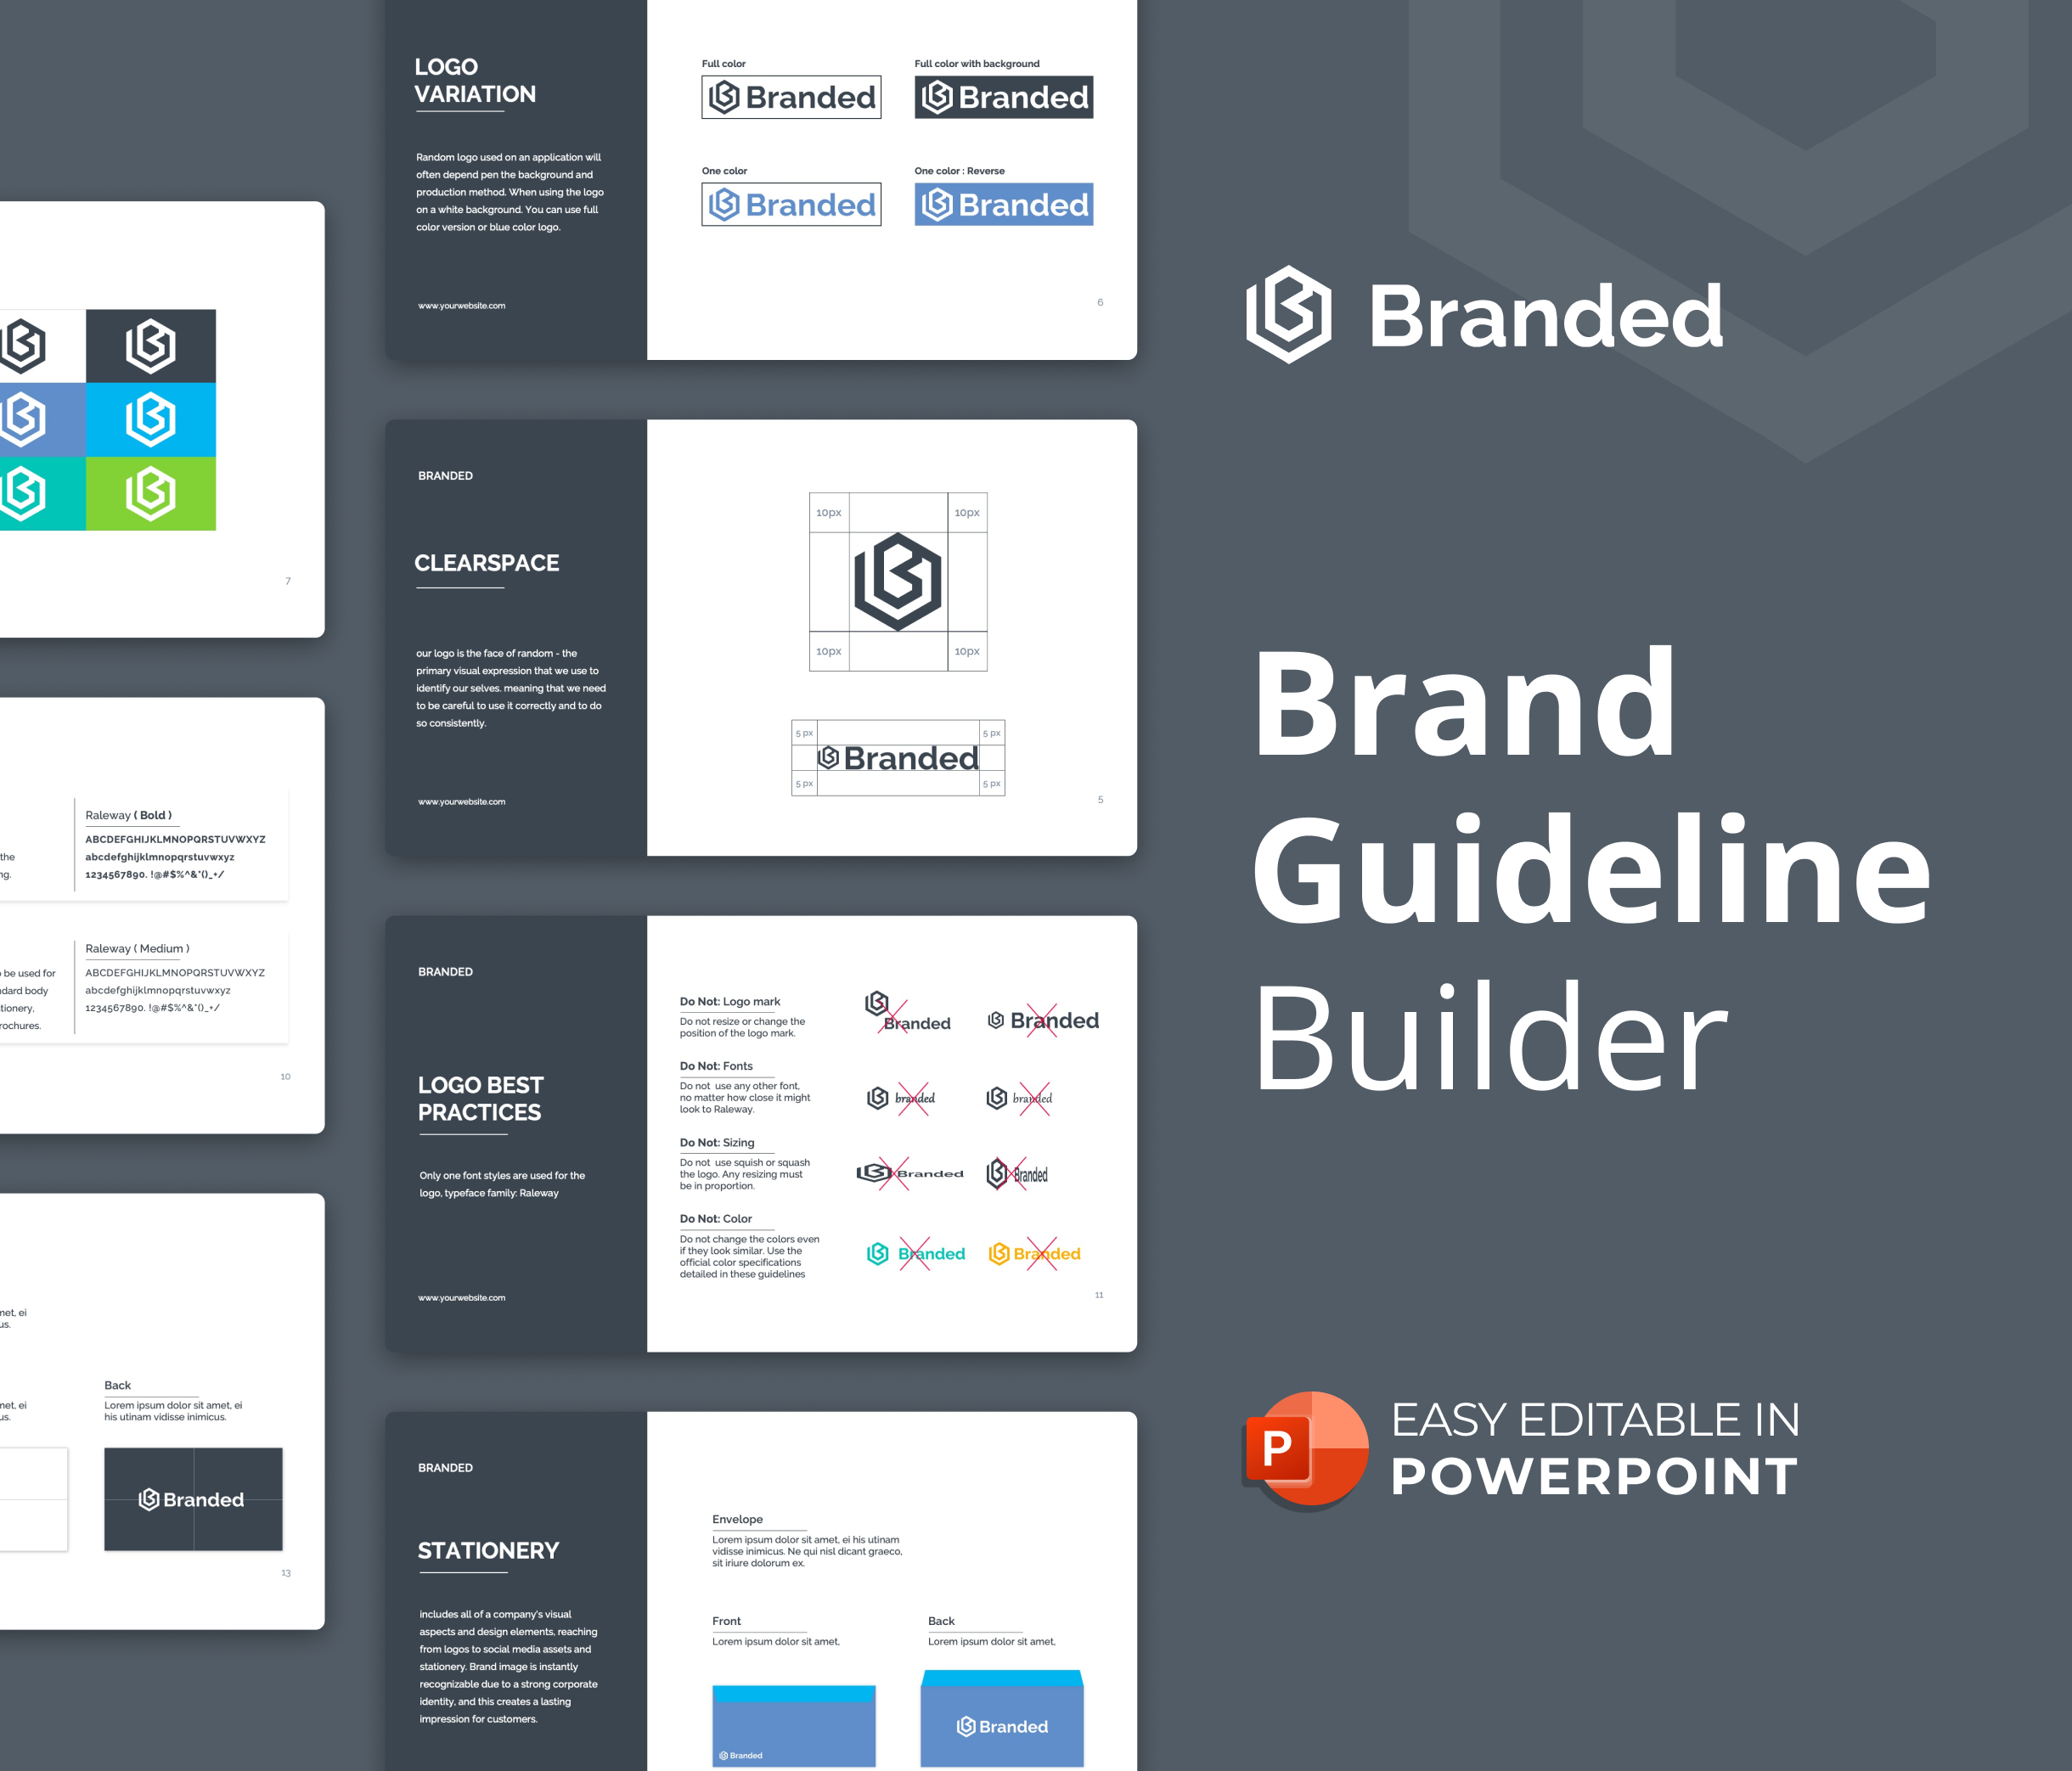 Brand Guideline Builder PowerPoint Presentation Template